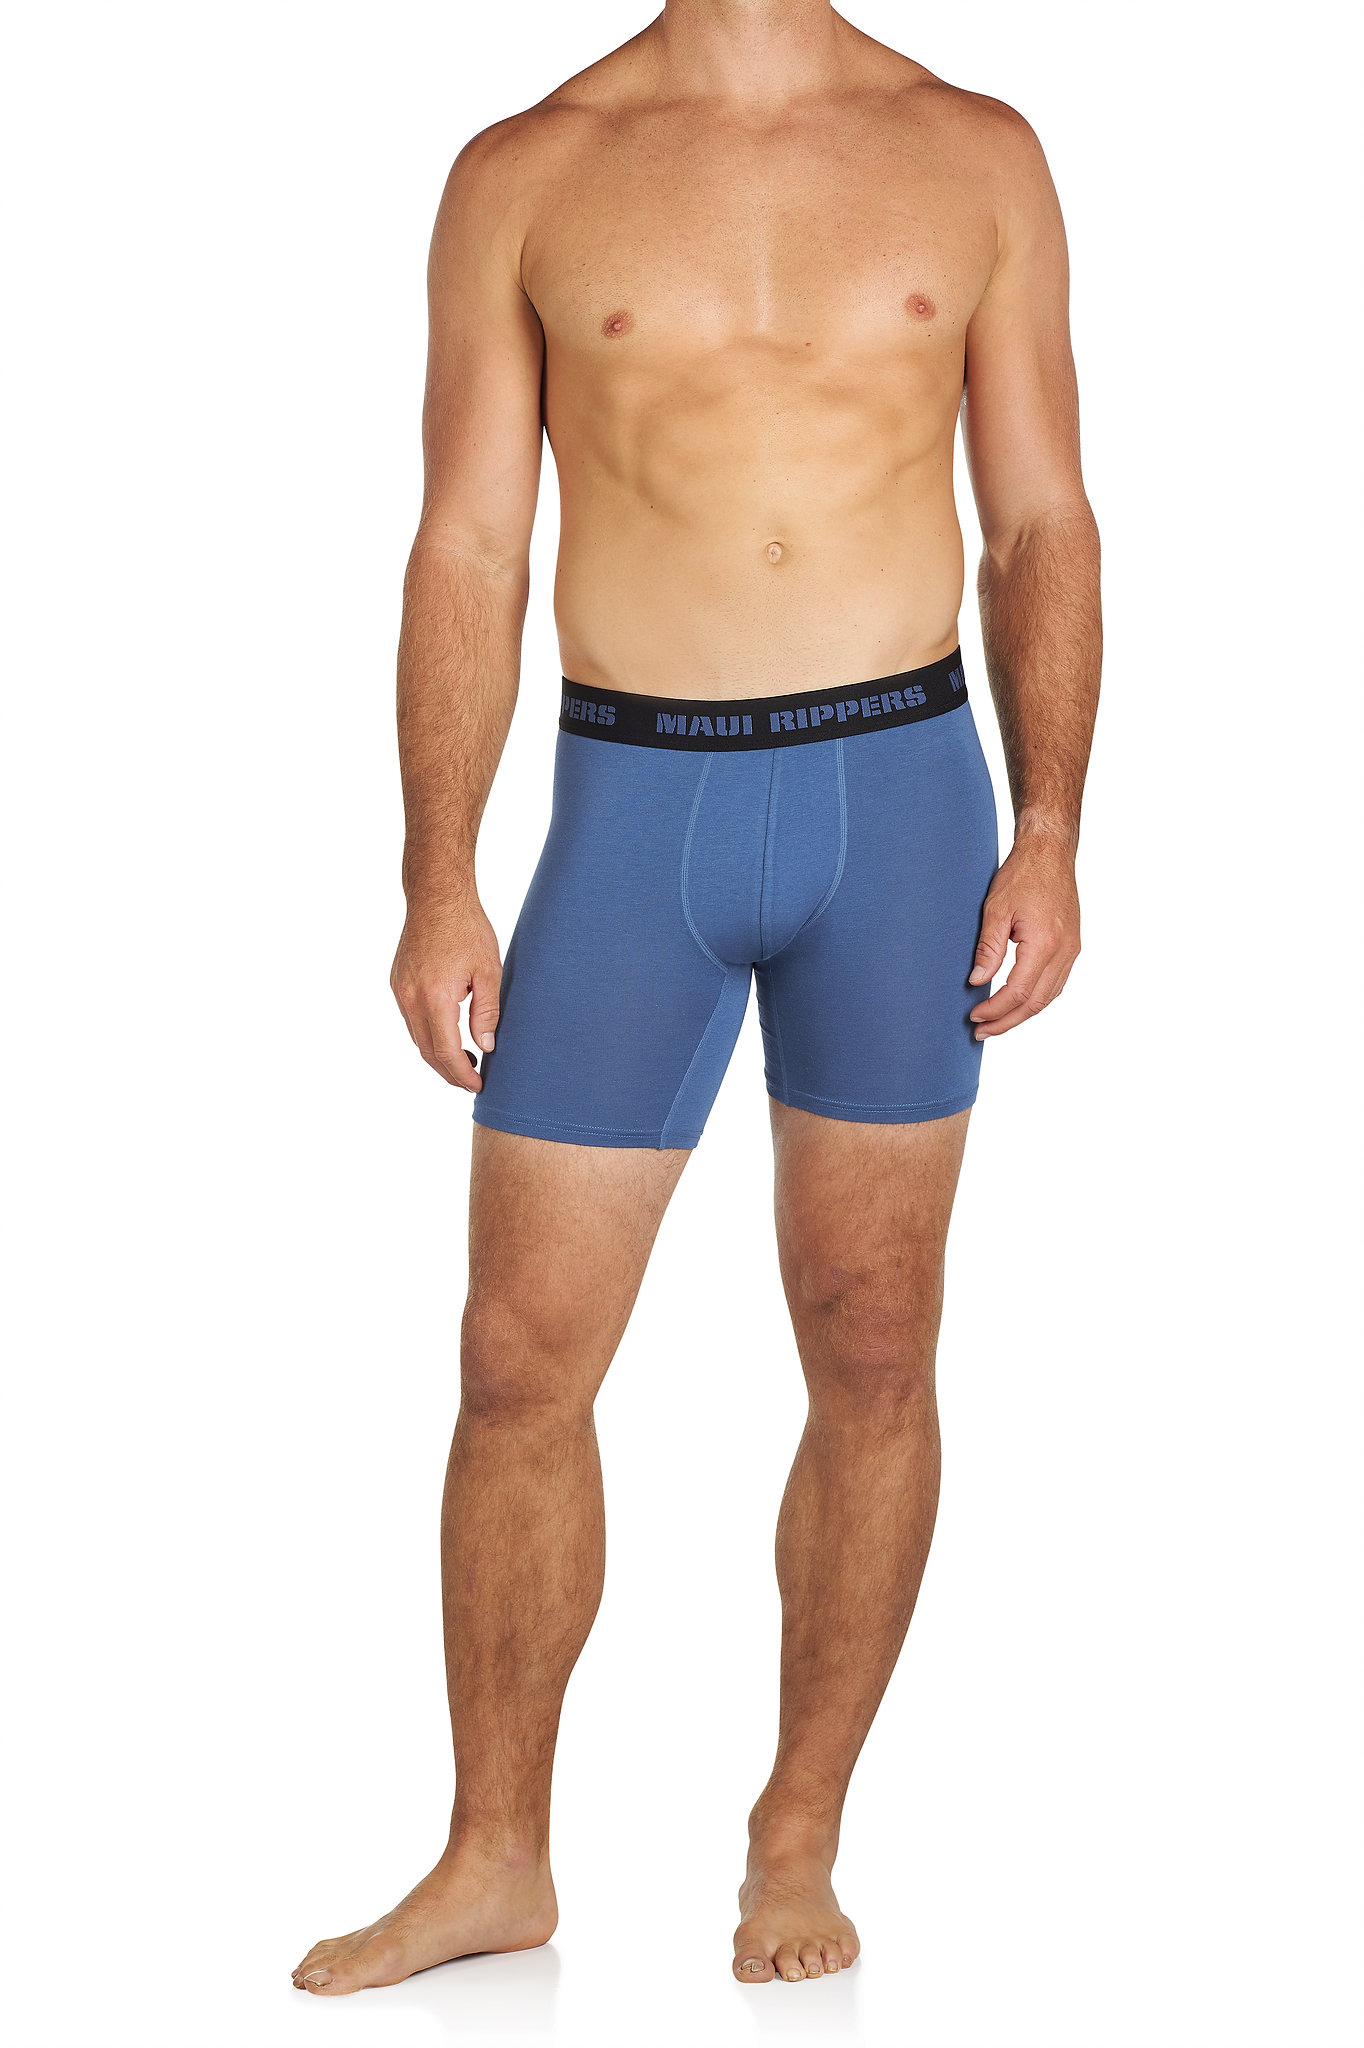 Maui Rippers men's underwear boxer briefs waterproof anti-odor and moisture wicking